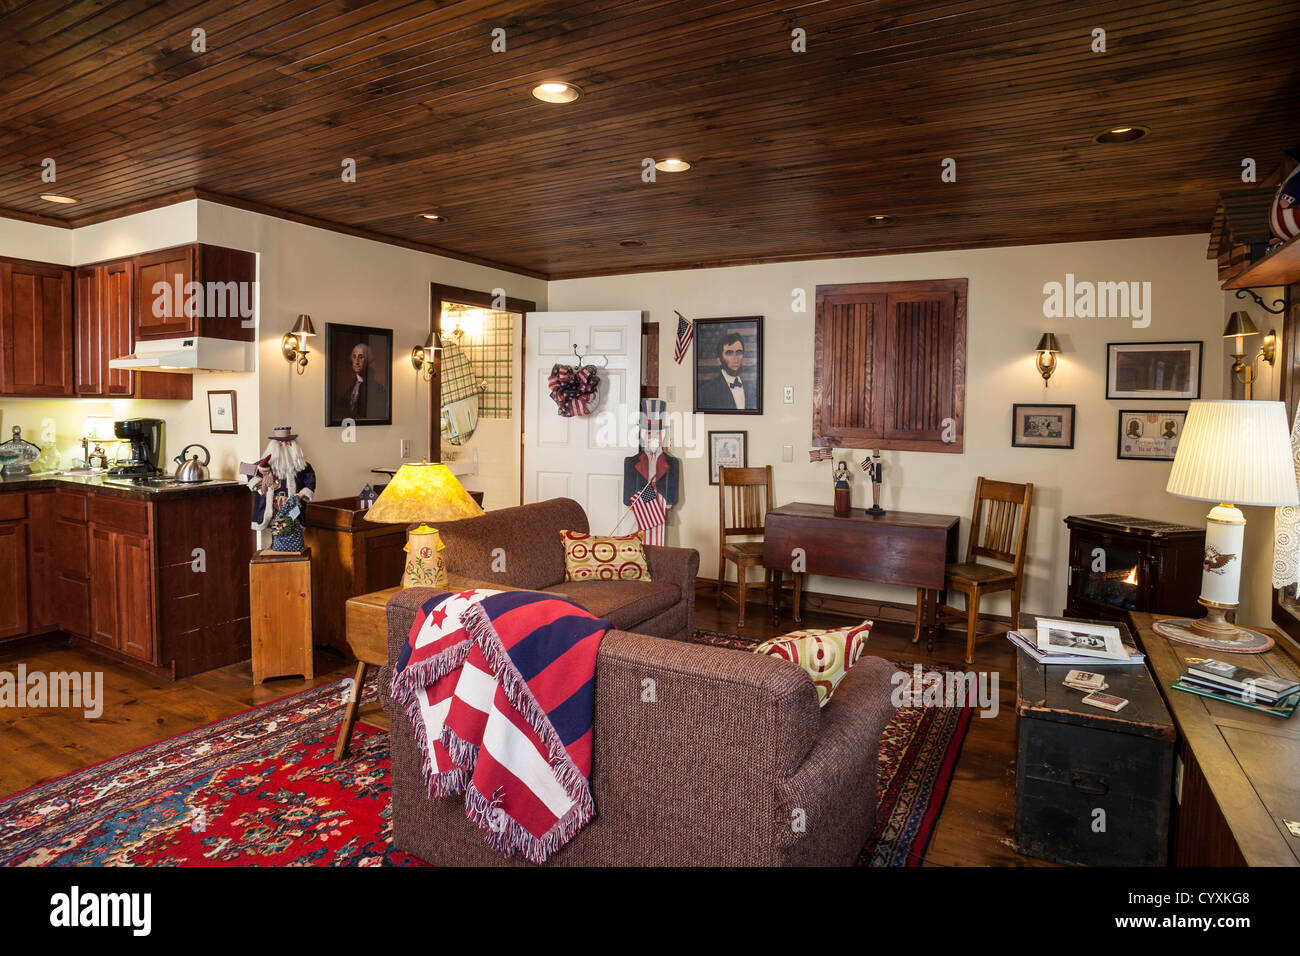 Great room interior with early american decor usa stock for Home decor online shopping usa